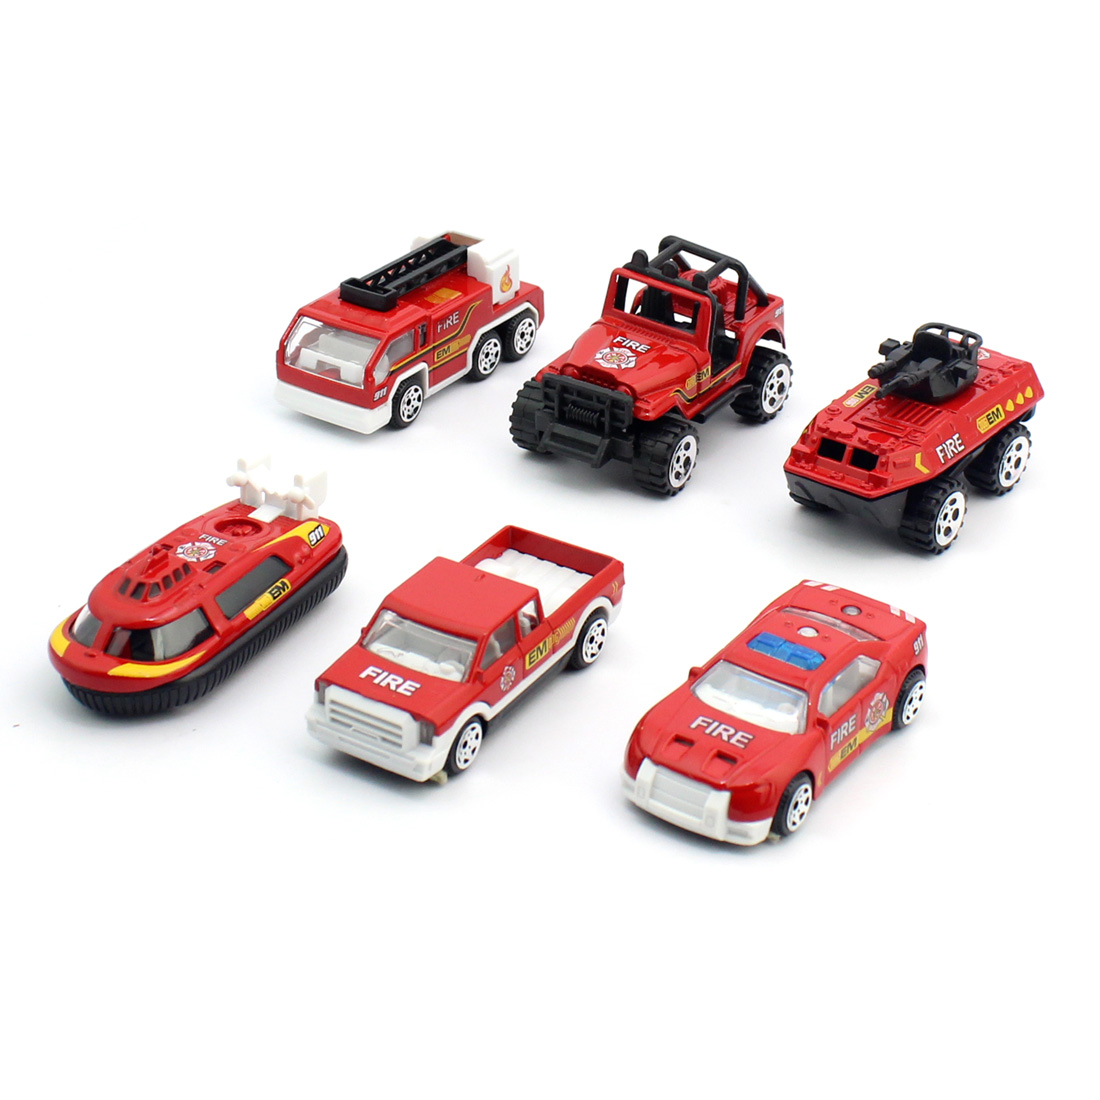 8pcs Children Toy Vehicles Pull Back Car Vehicle Toy 1:64 Alloy Mini Car Toy Model Intellectual Christmas Gift Toys In Pain Toys & Hobbies